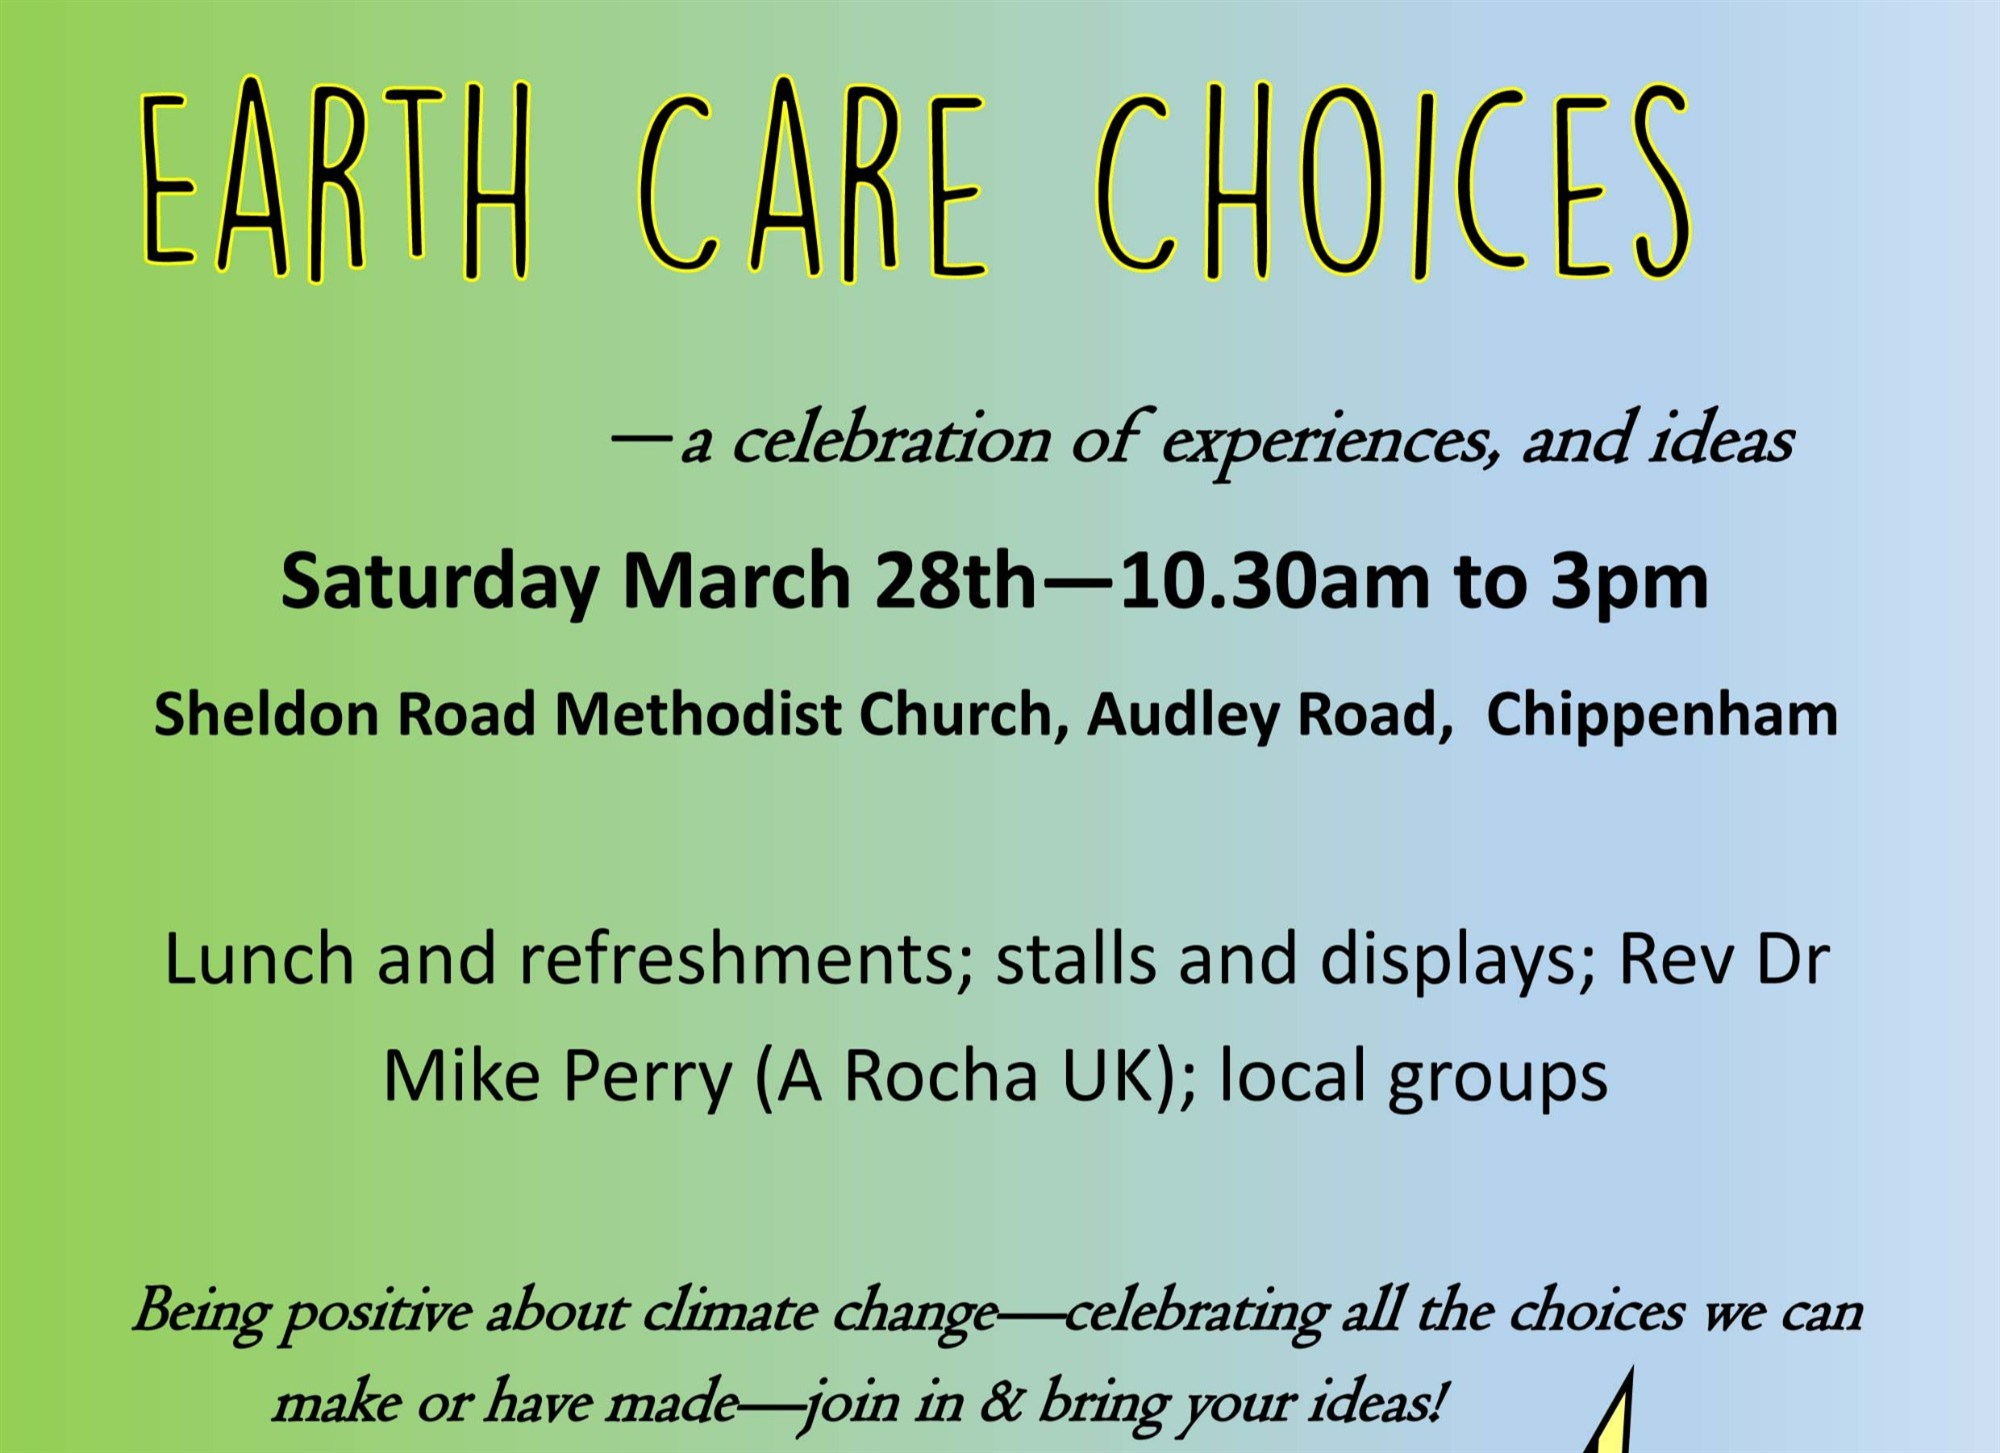 008 Earth Care Choices poster